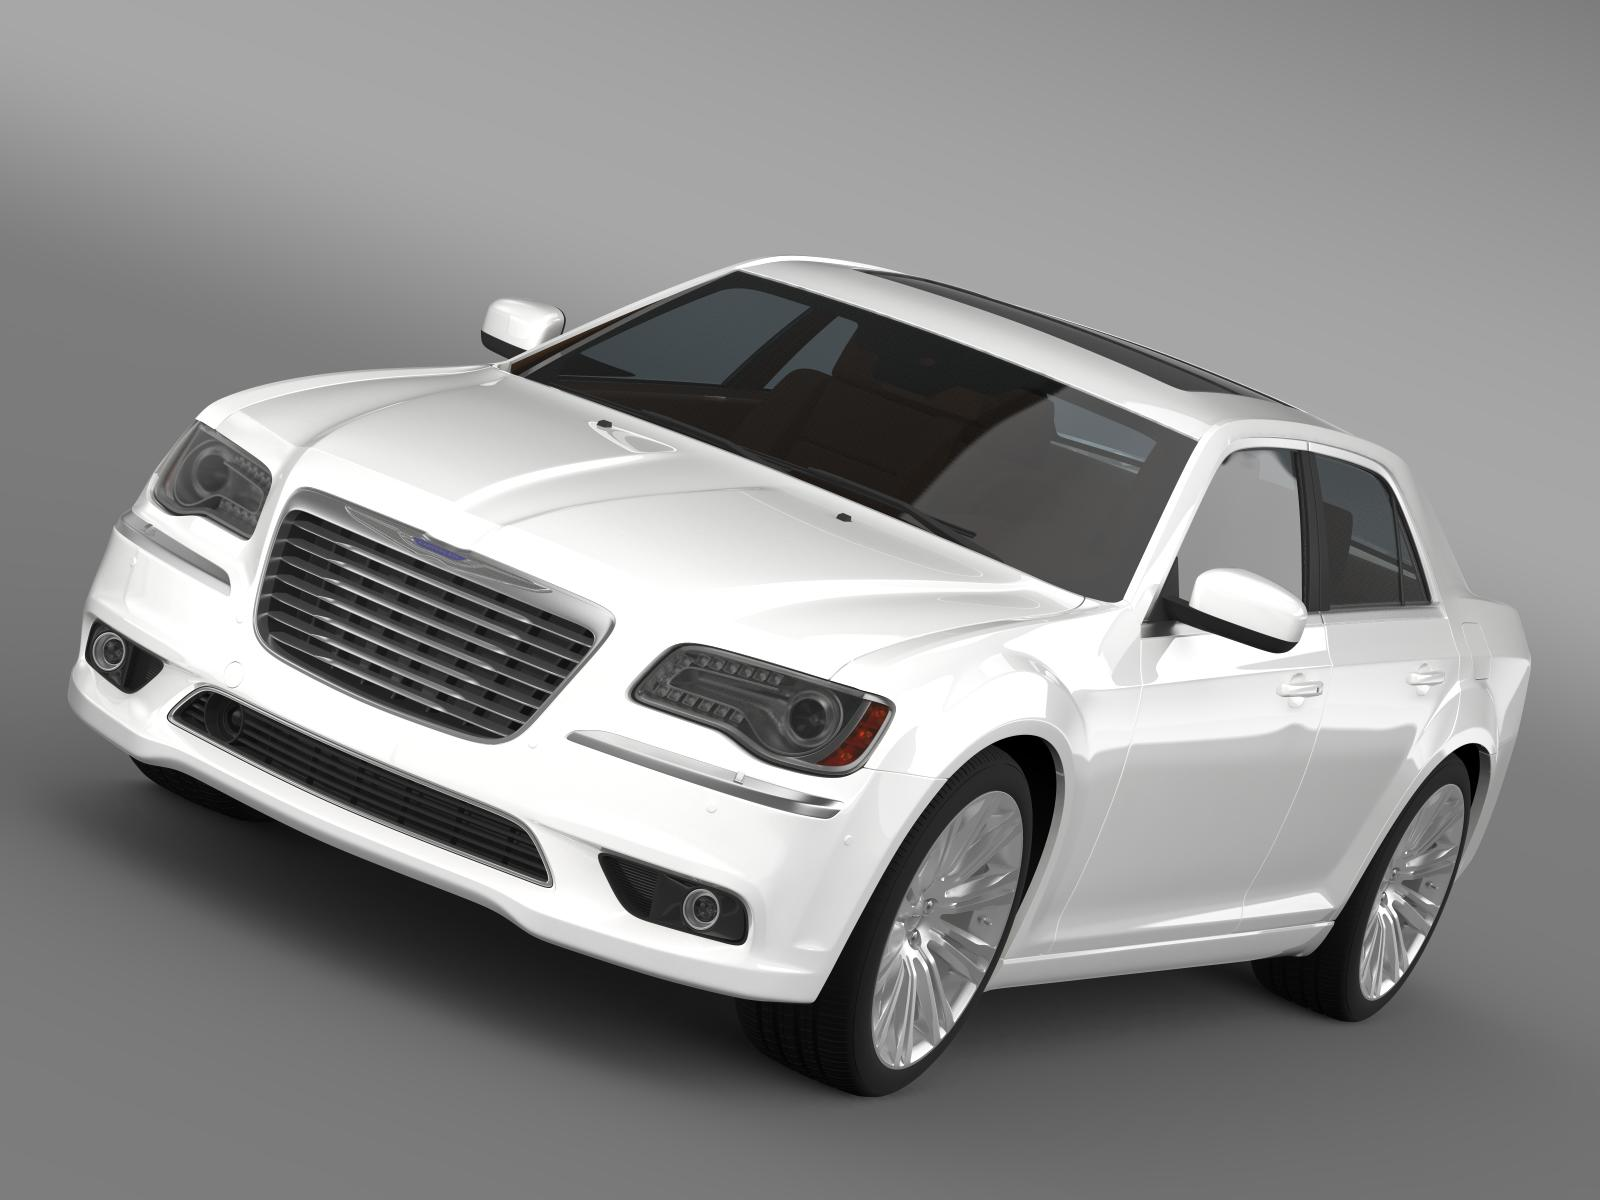 chrysler 300c 2013 3d model 3ds max fbx c4d le hrc xsi obj 205536